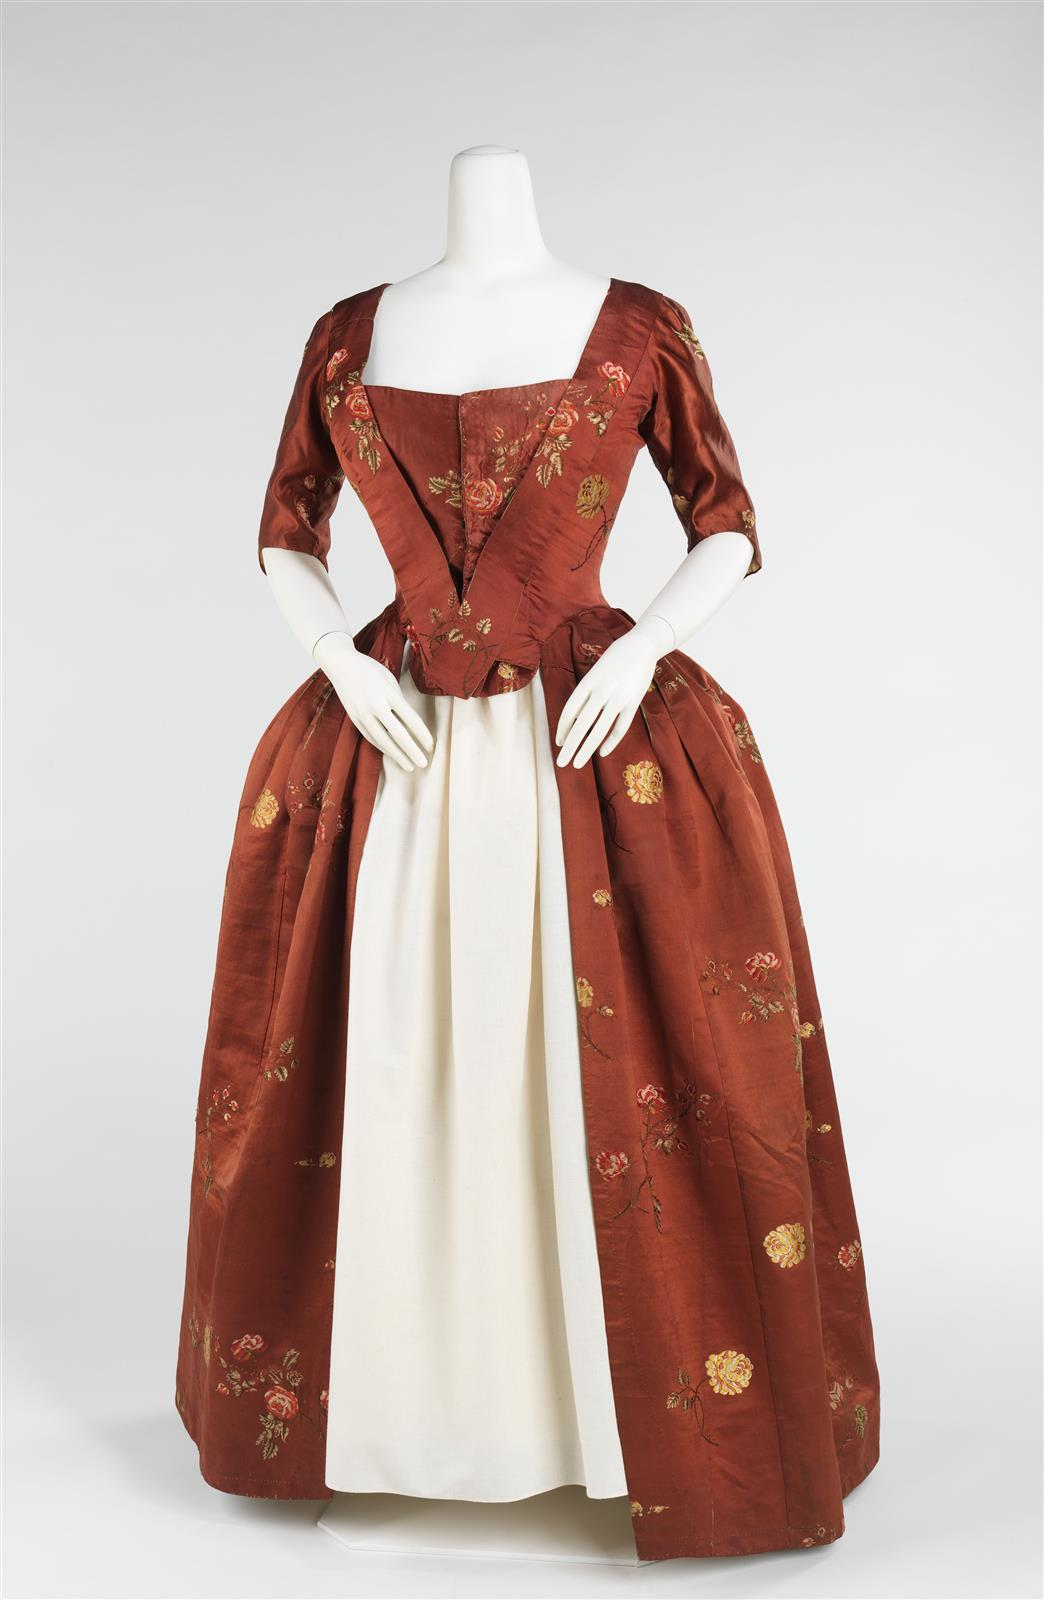 1750. Robe à l'Anglaise. British. Silk.